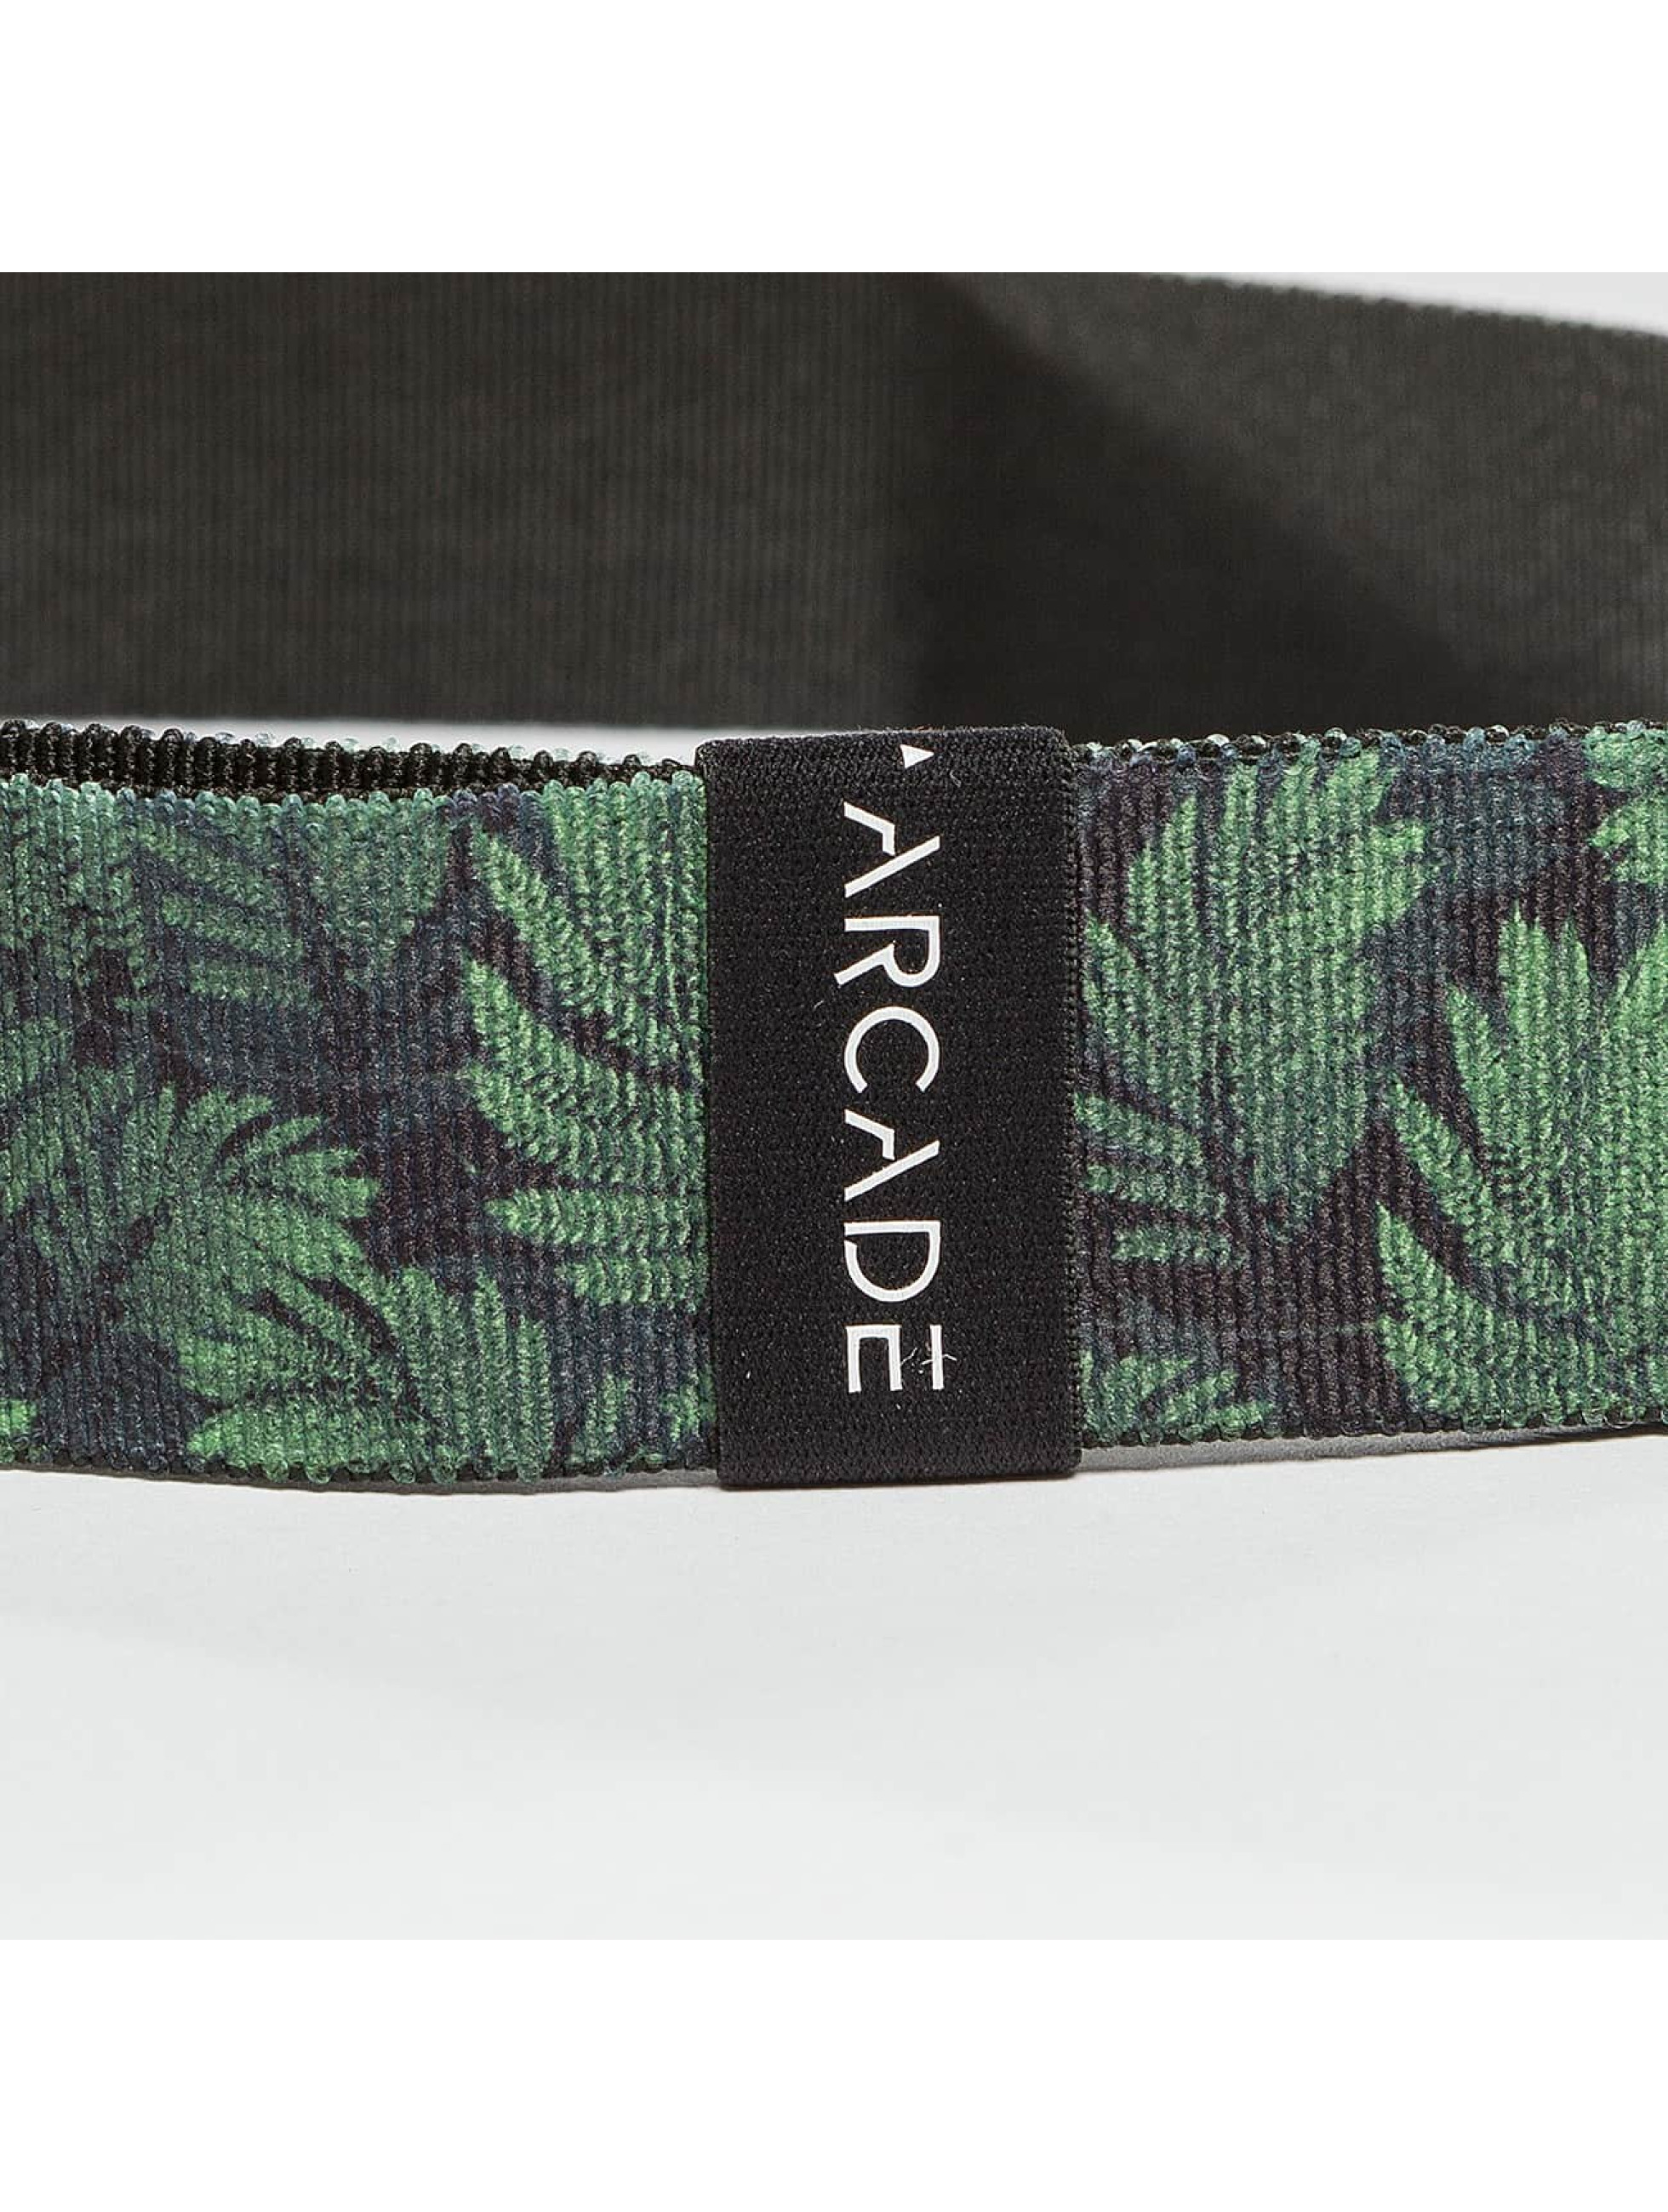 ARCADE Belt The Deep Cover green